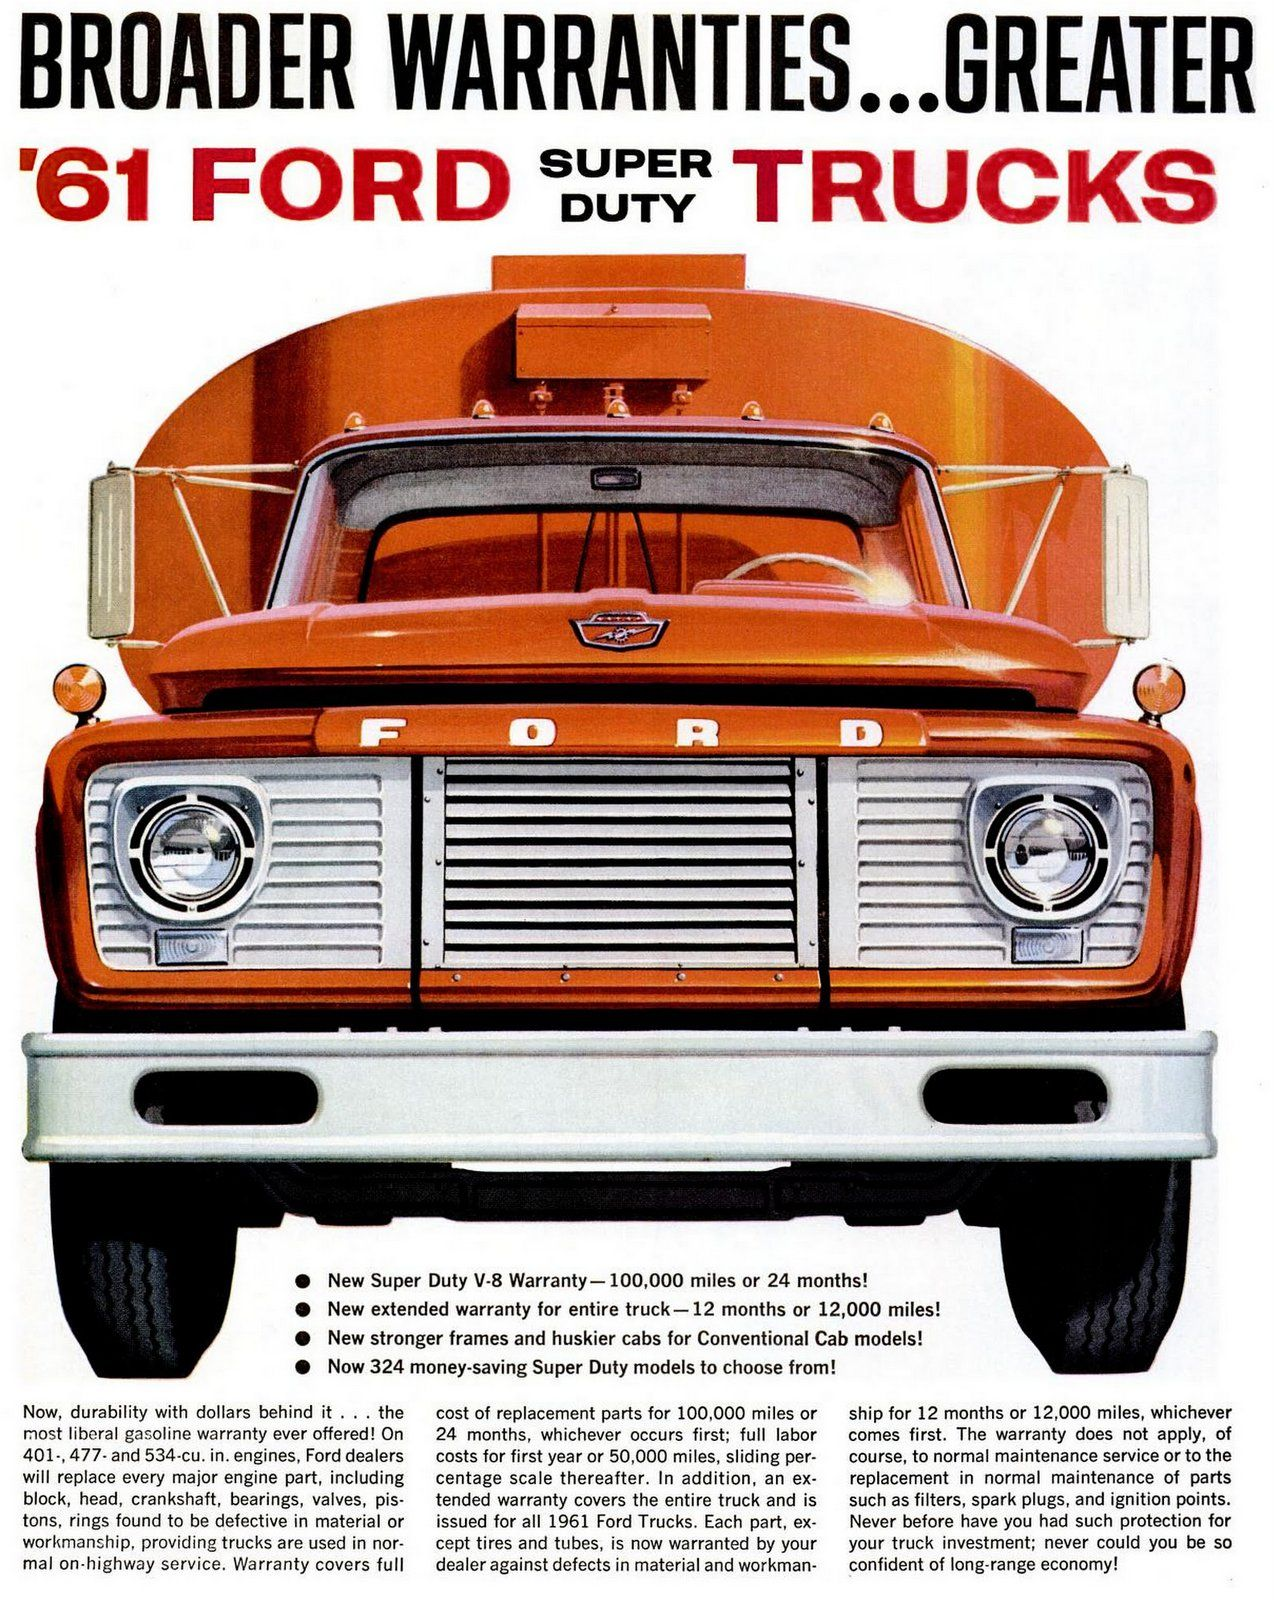 The Heavy Duty Ford Trucks From 1961 Ford Trucks Ford Super